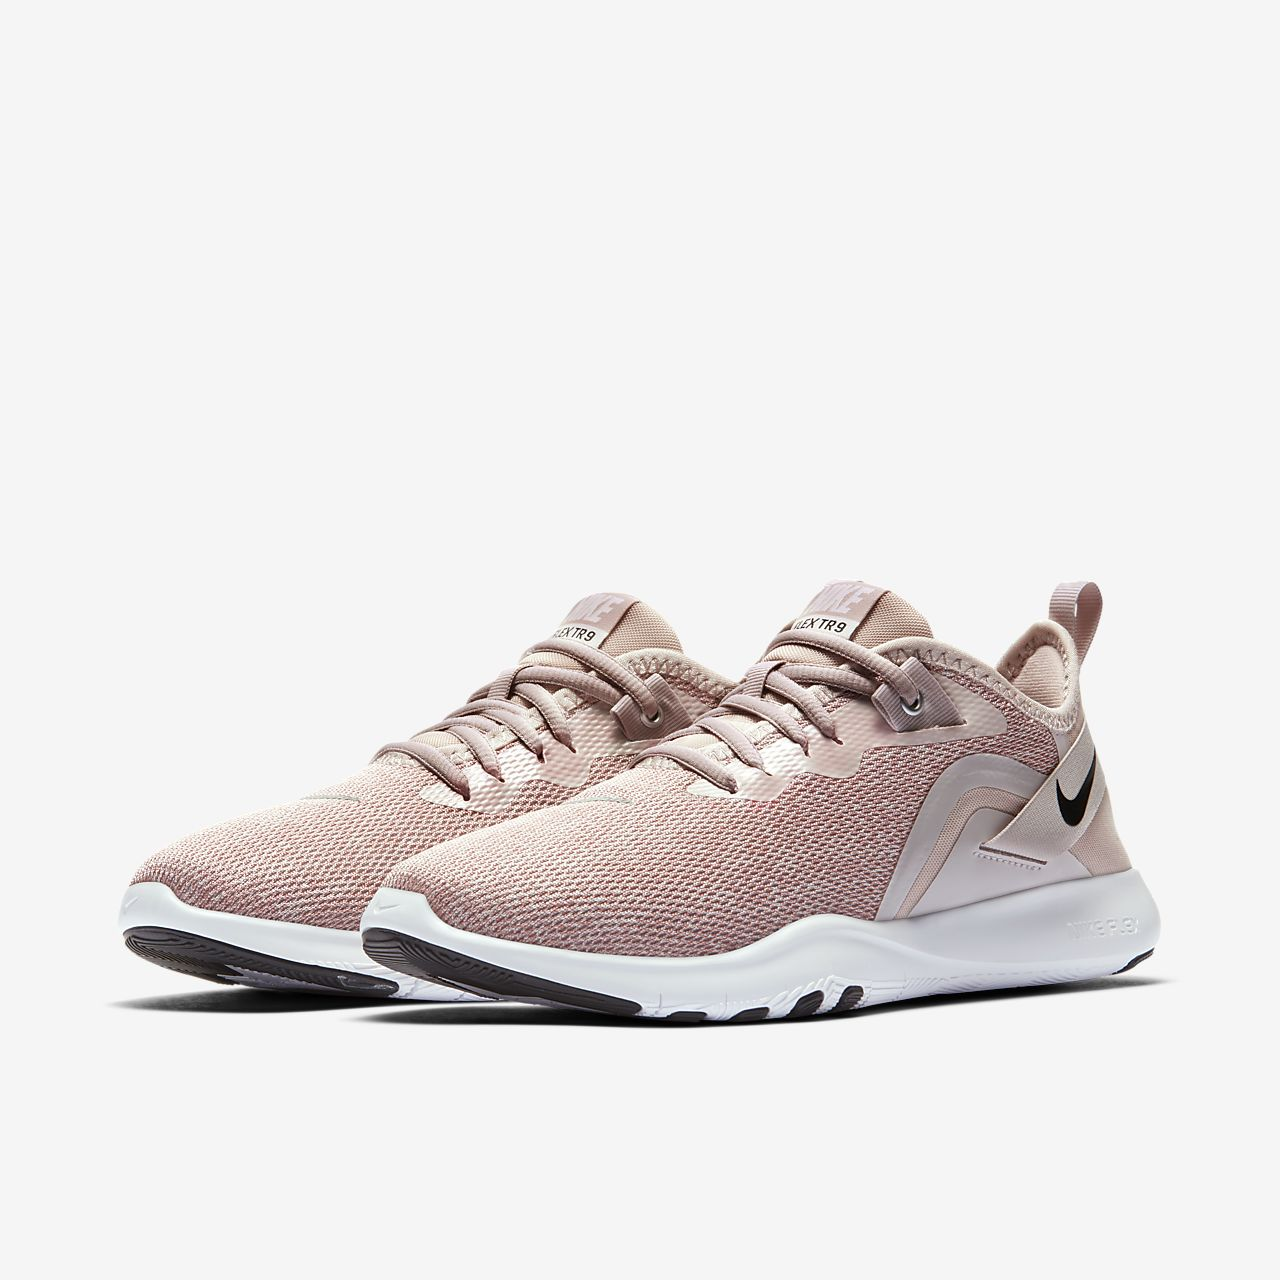 Women's Sneakers & Athletic Shoes Nike Flex TR 9